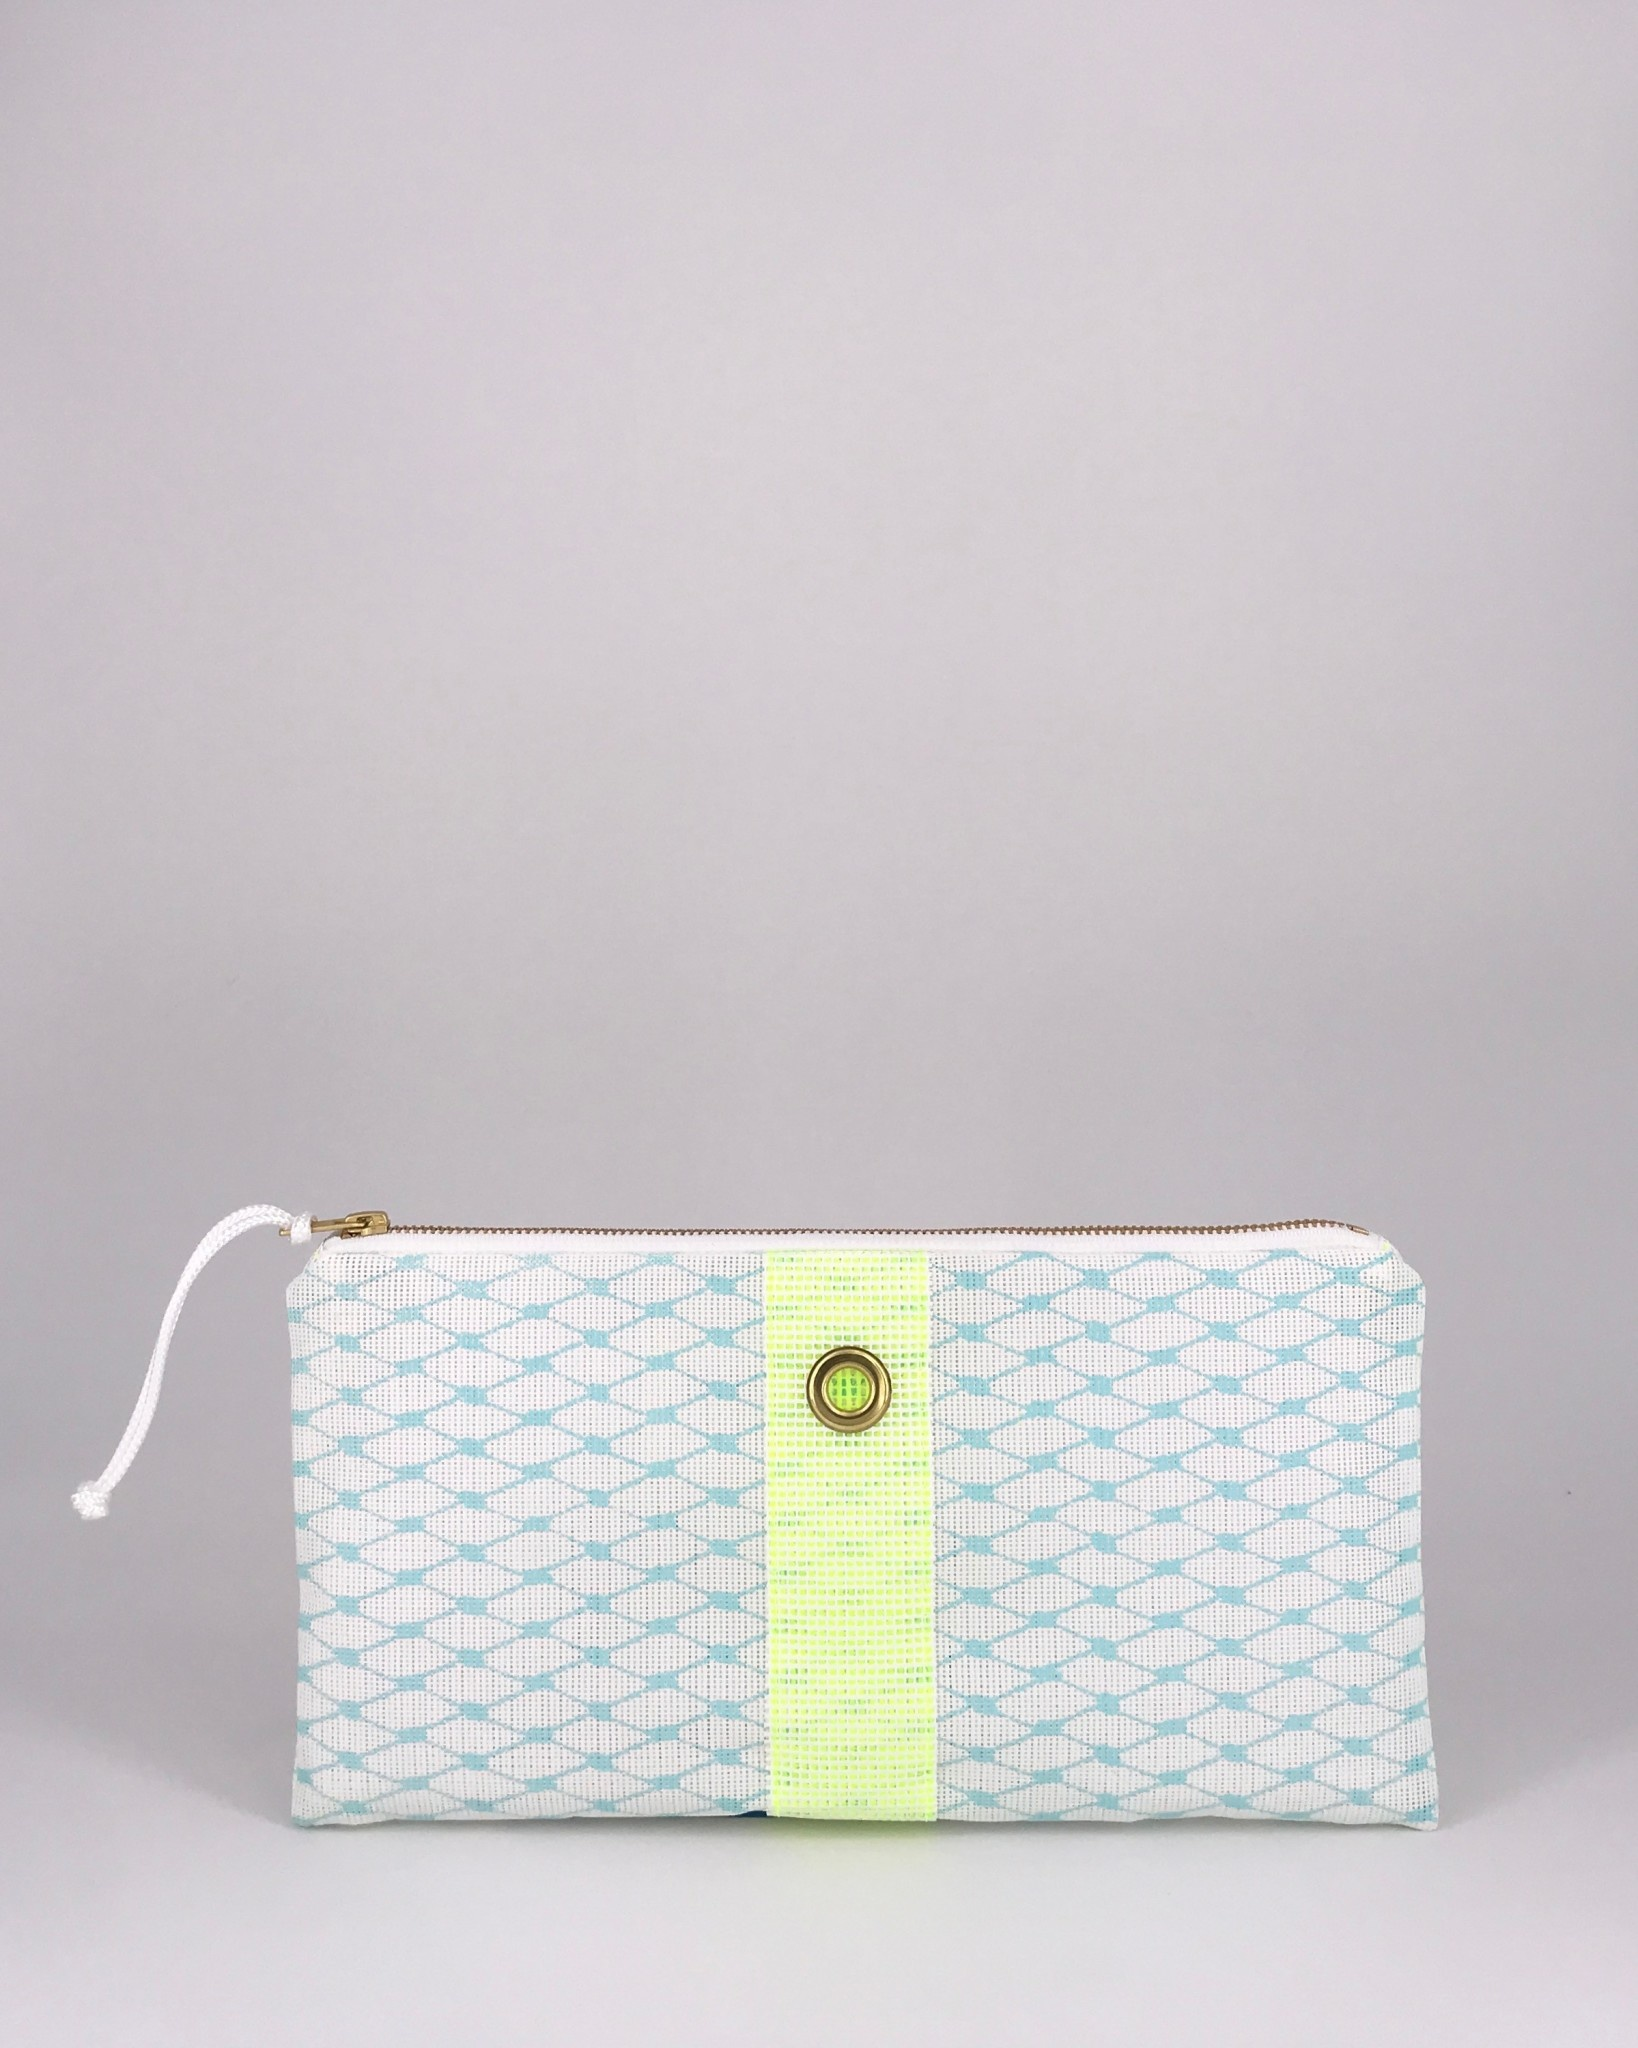 Alaina Marie ® Soothing Sea & Citron Clutch